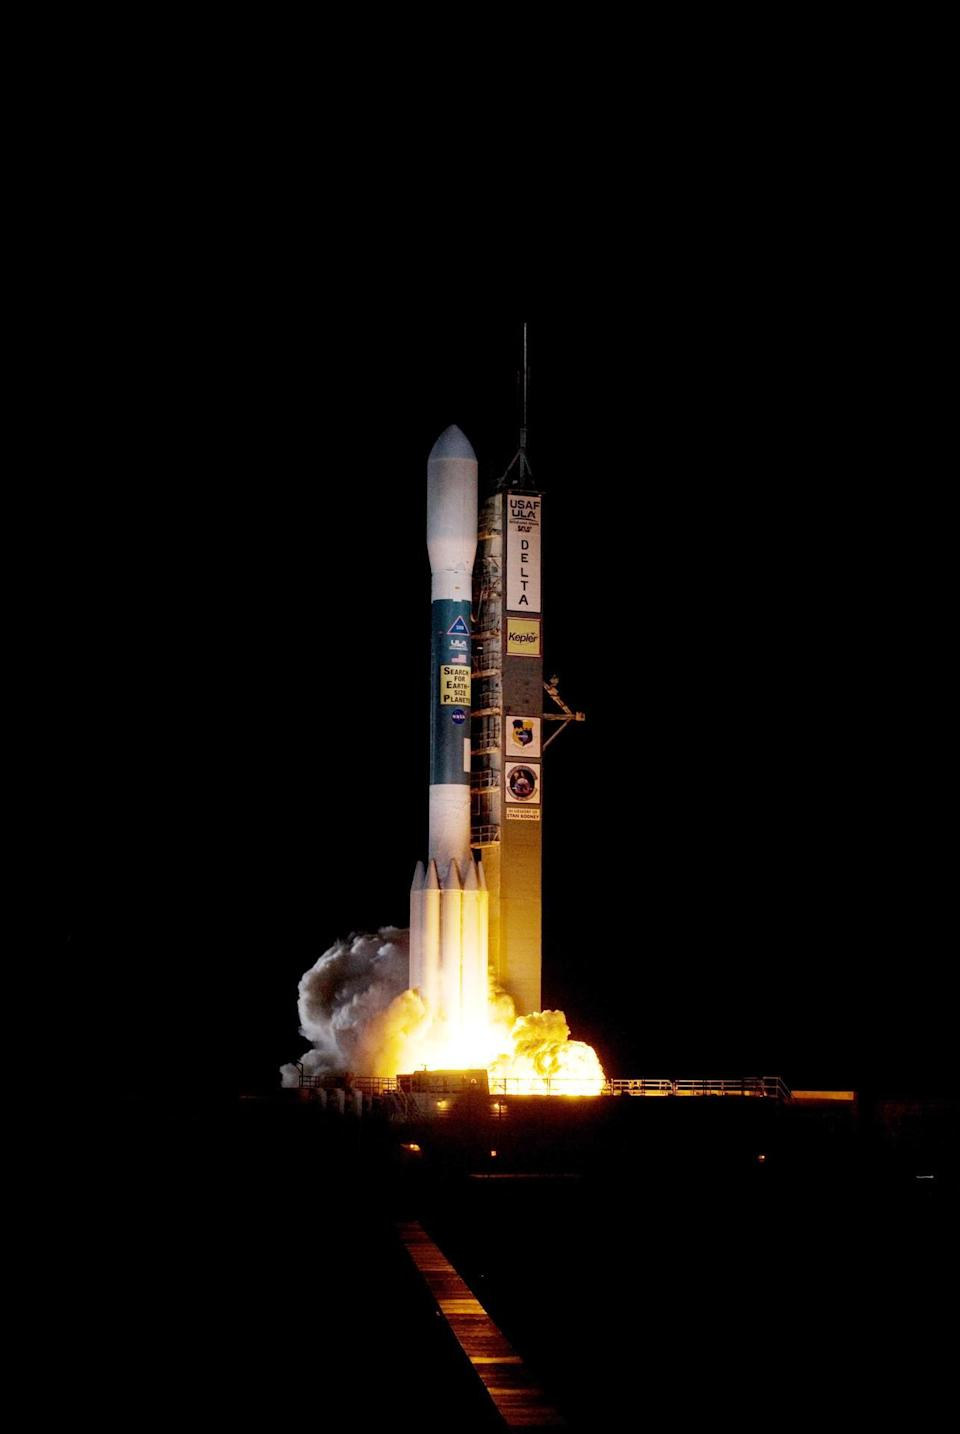 On Monday evening, NASA plans to launch a brand new satellite into orbit,